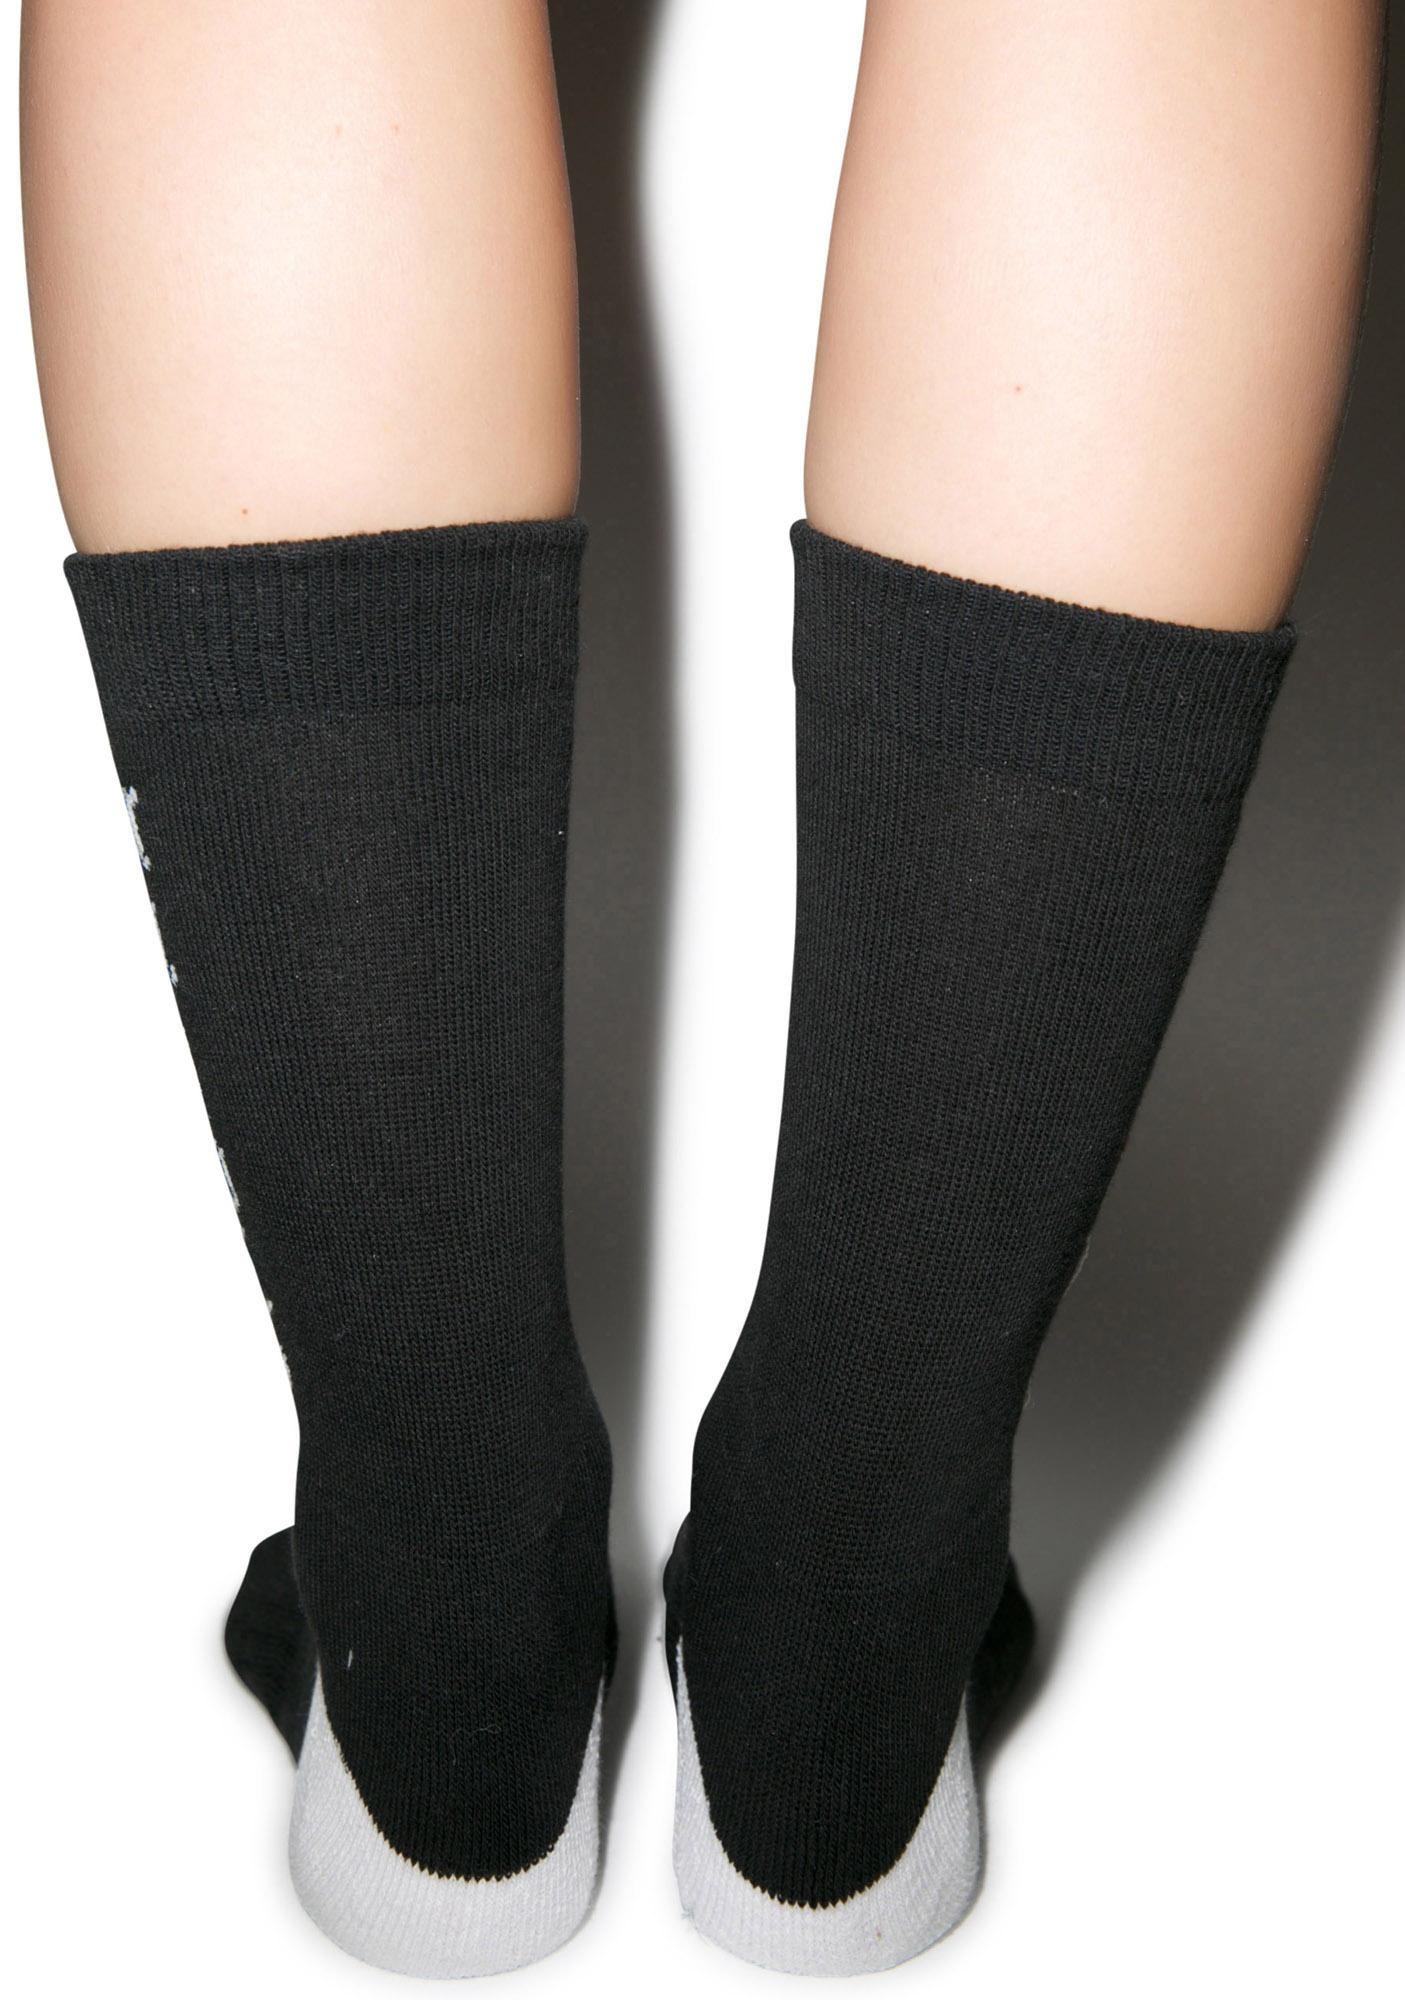 Blackcraft Unholy Socks